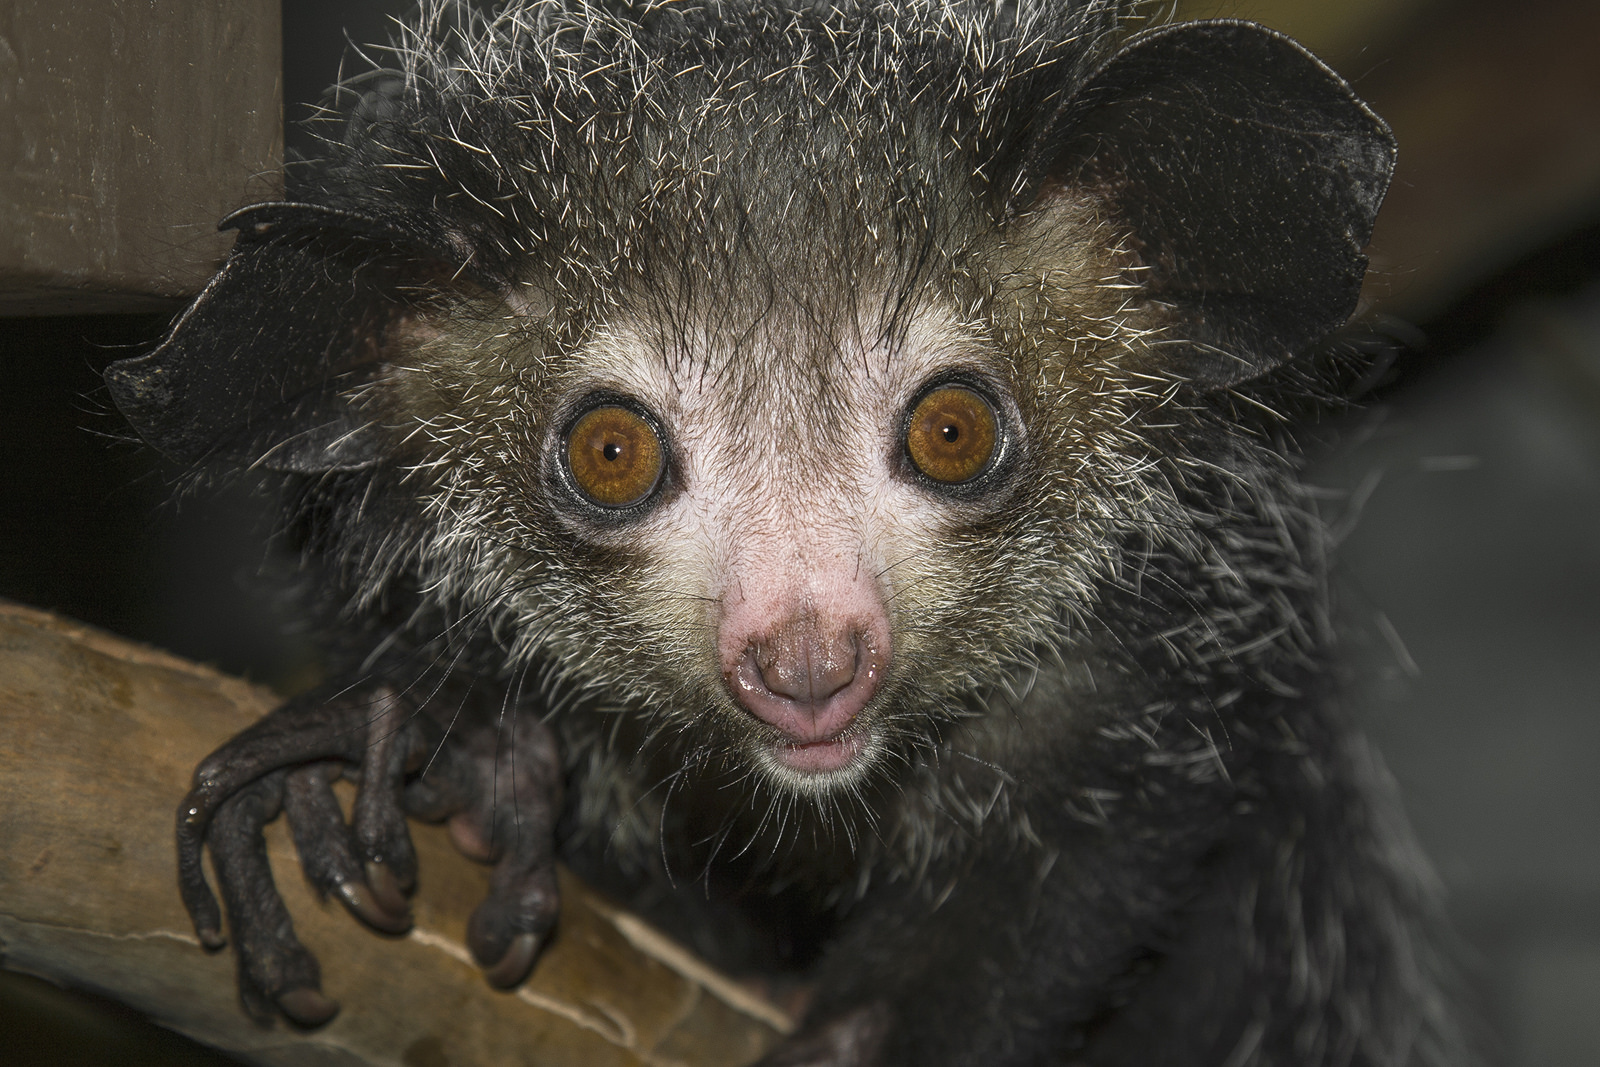 The one of a kind aye-aye uses its large radar-like ears to hear grubs moving under the bark of a tree, and then it taps its specialized middle finger along the tree until it locates the right spot to pry open.